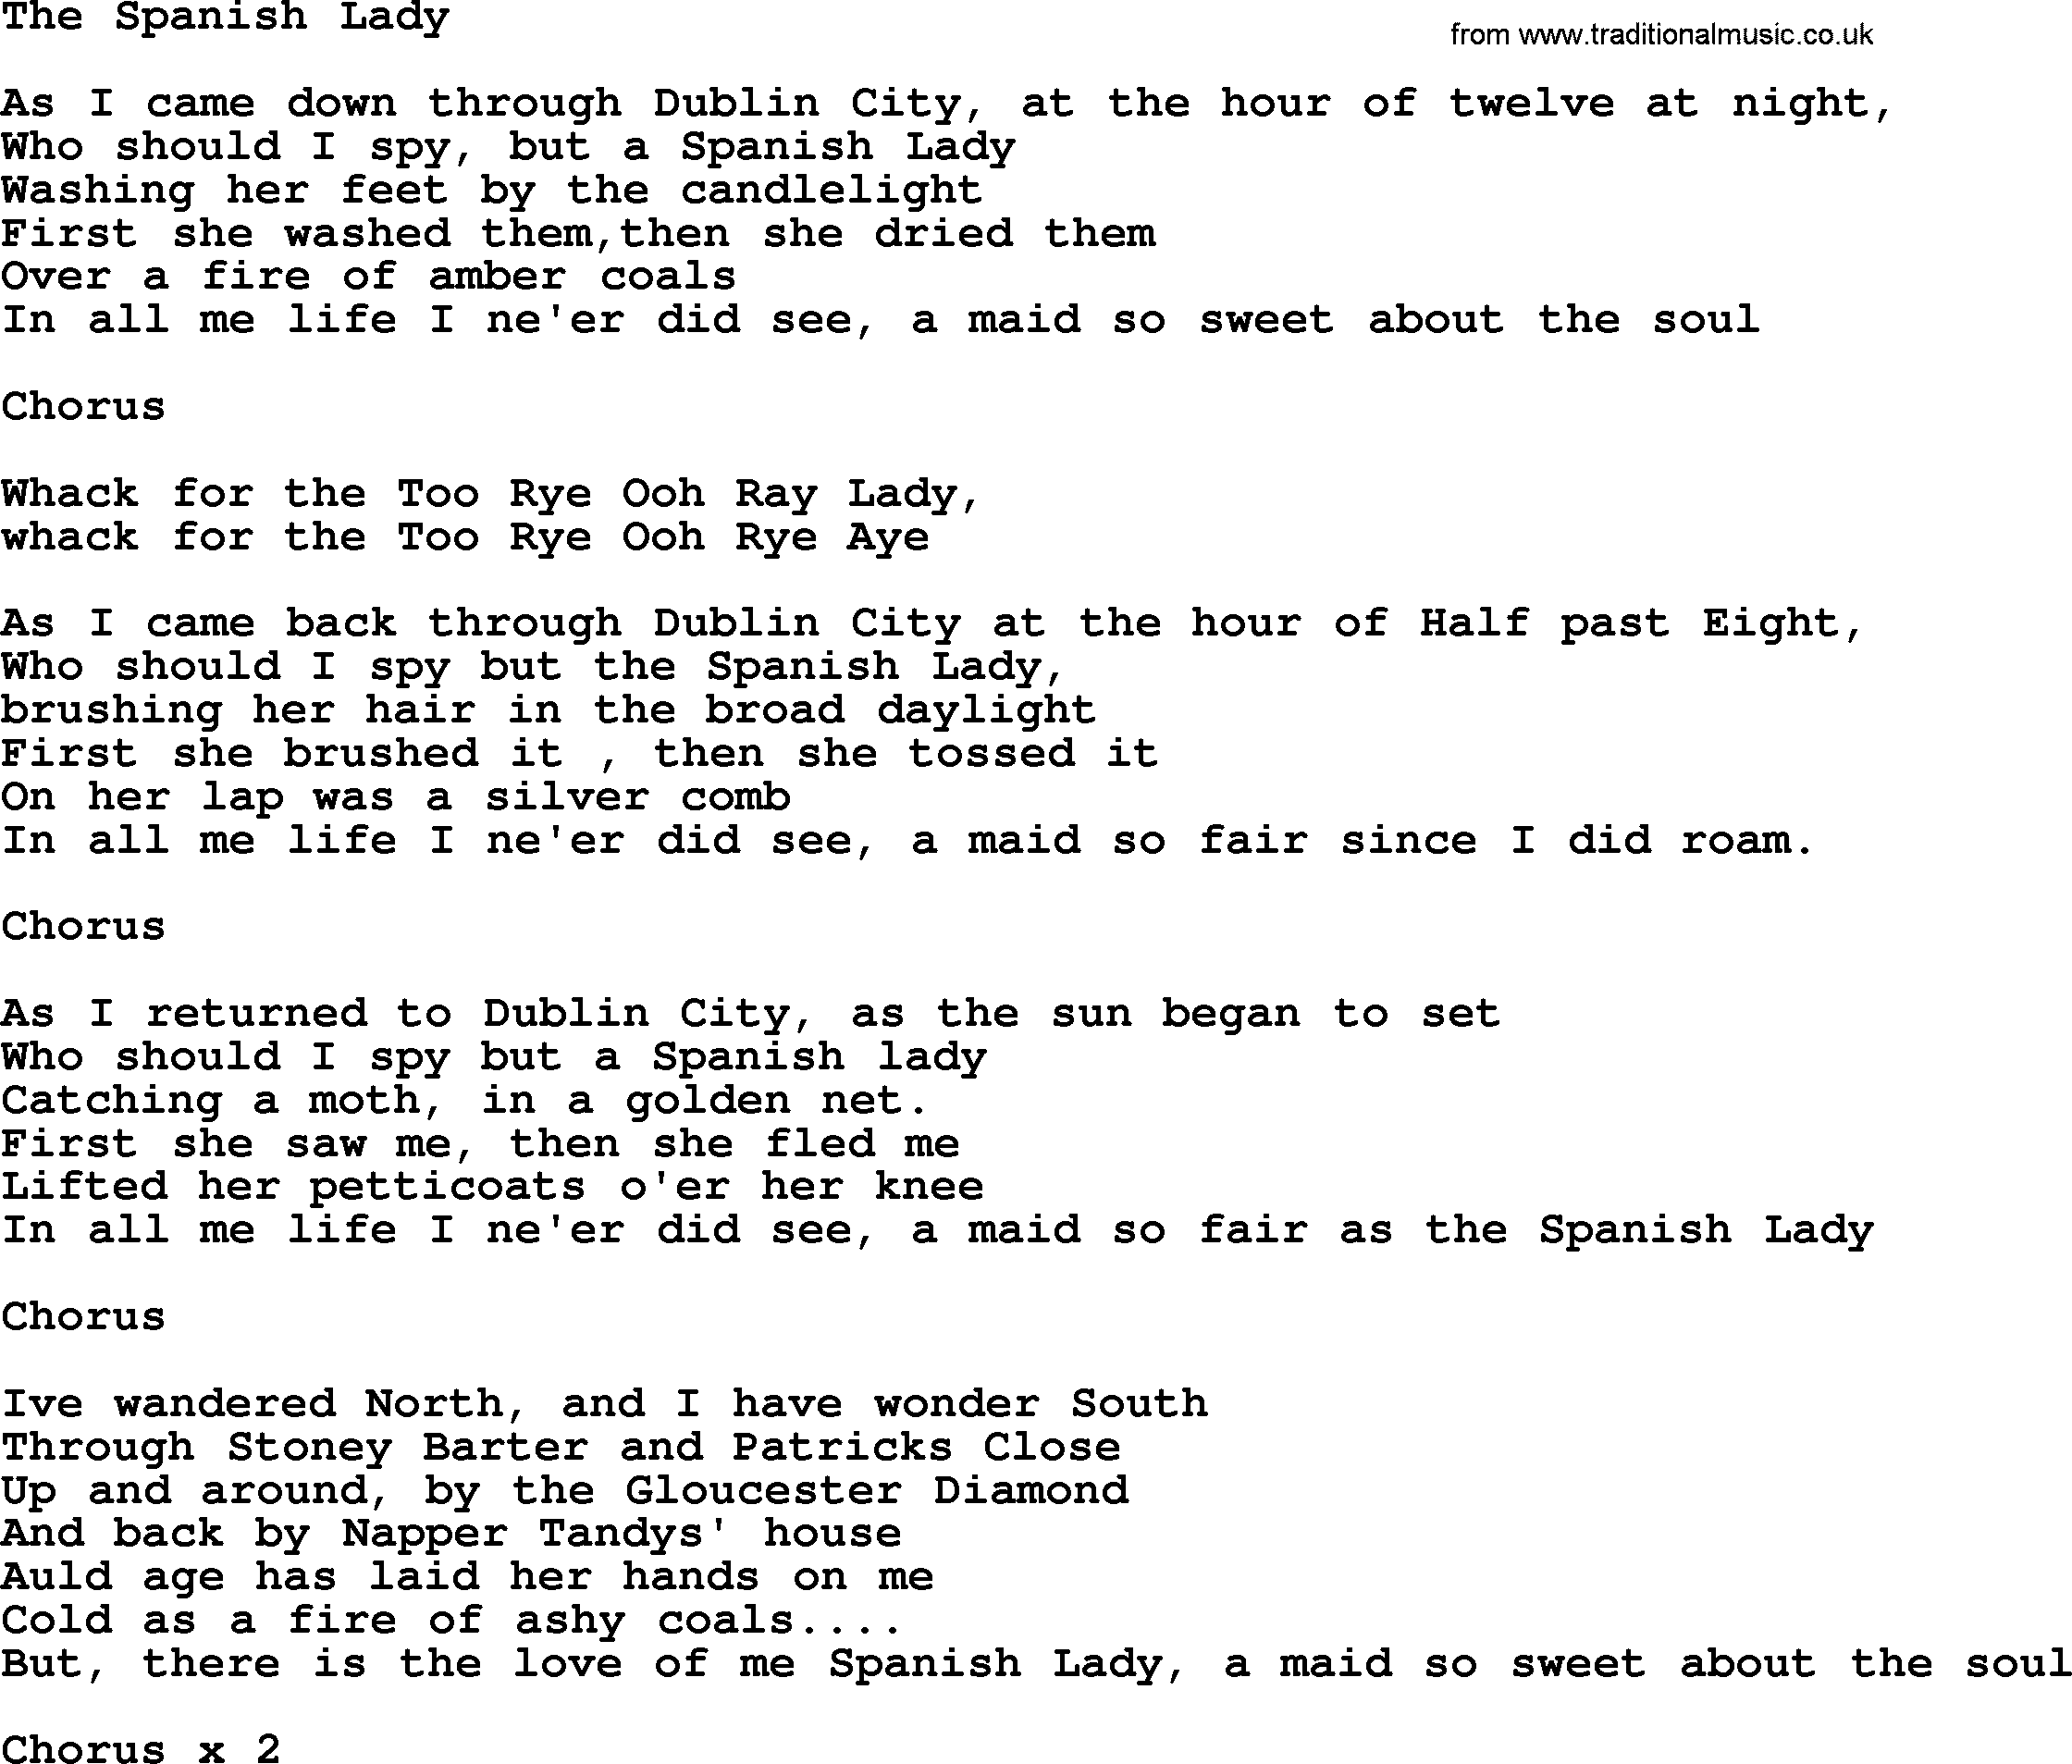 The Spanish Lady by The Dubliners - song lyrics and chords